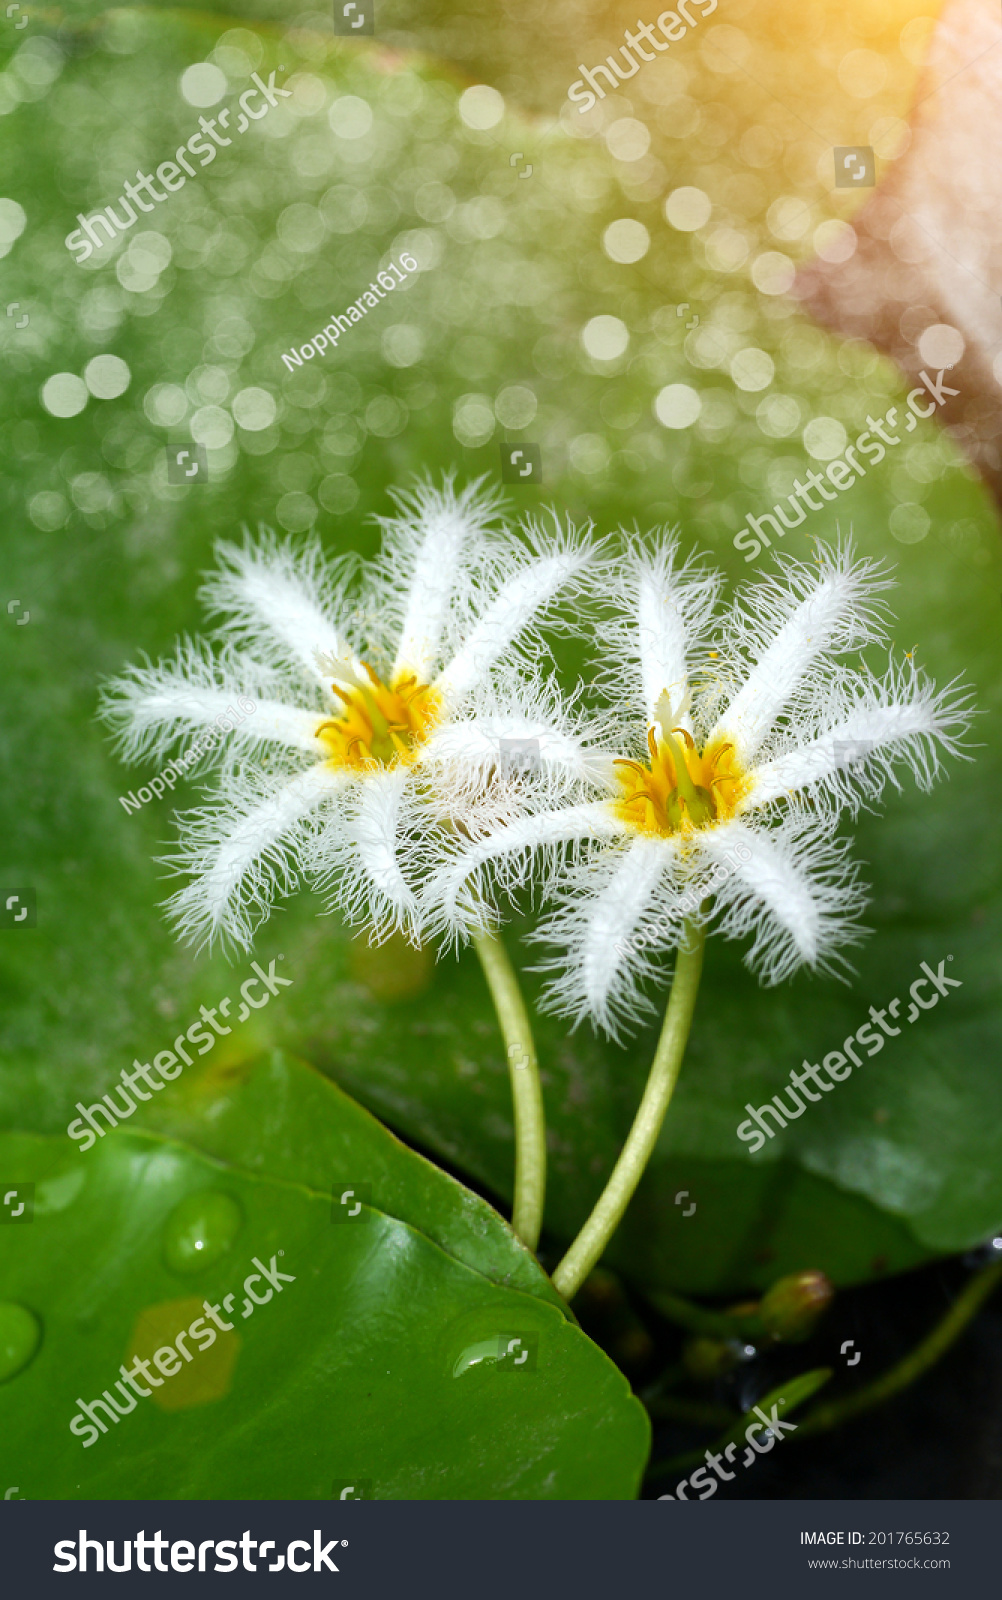 Small white water lily flower stock photo edit now 201765632 small white water lily flower izmirmasajfo